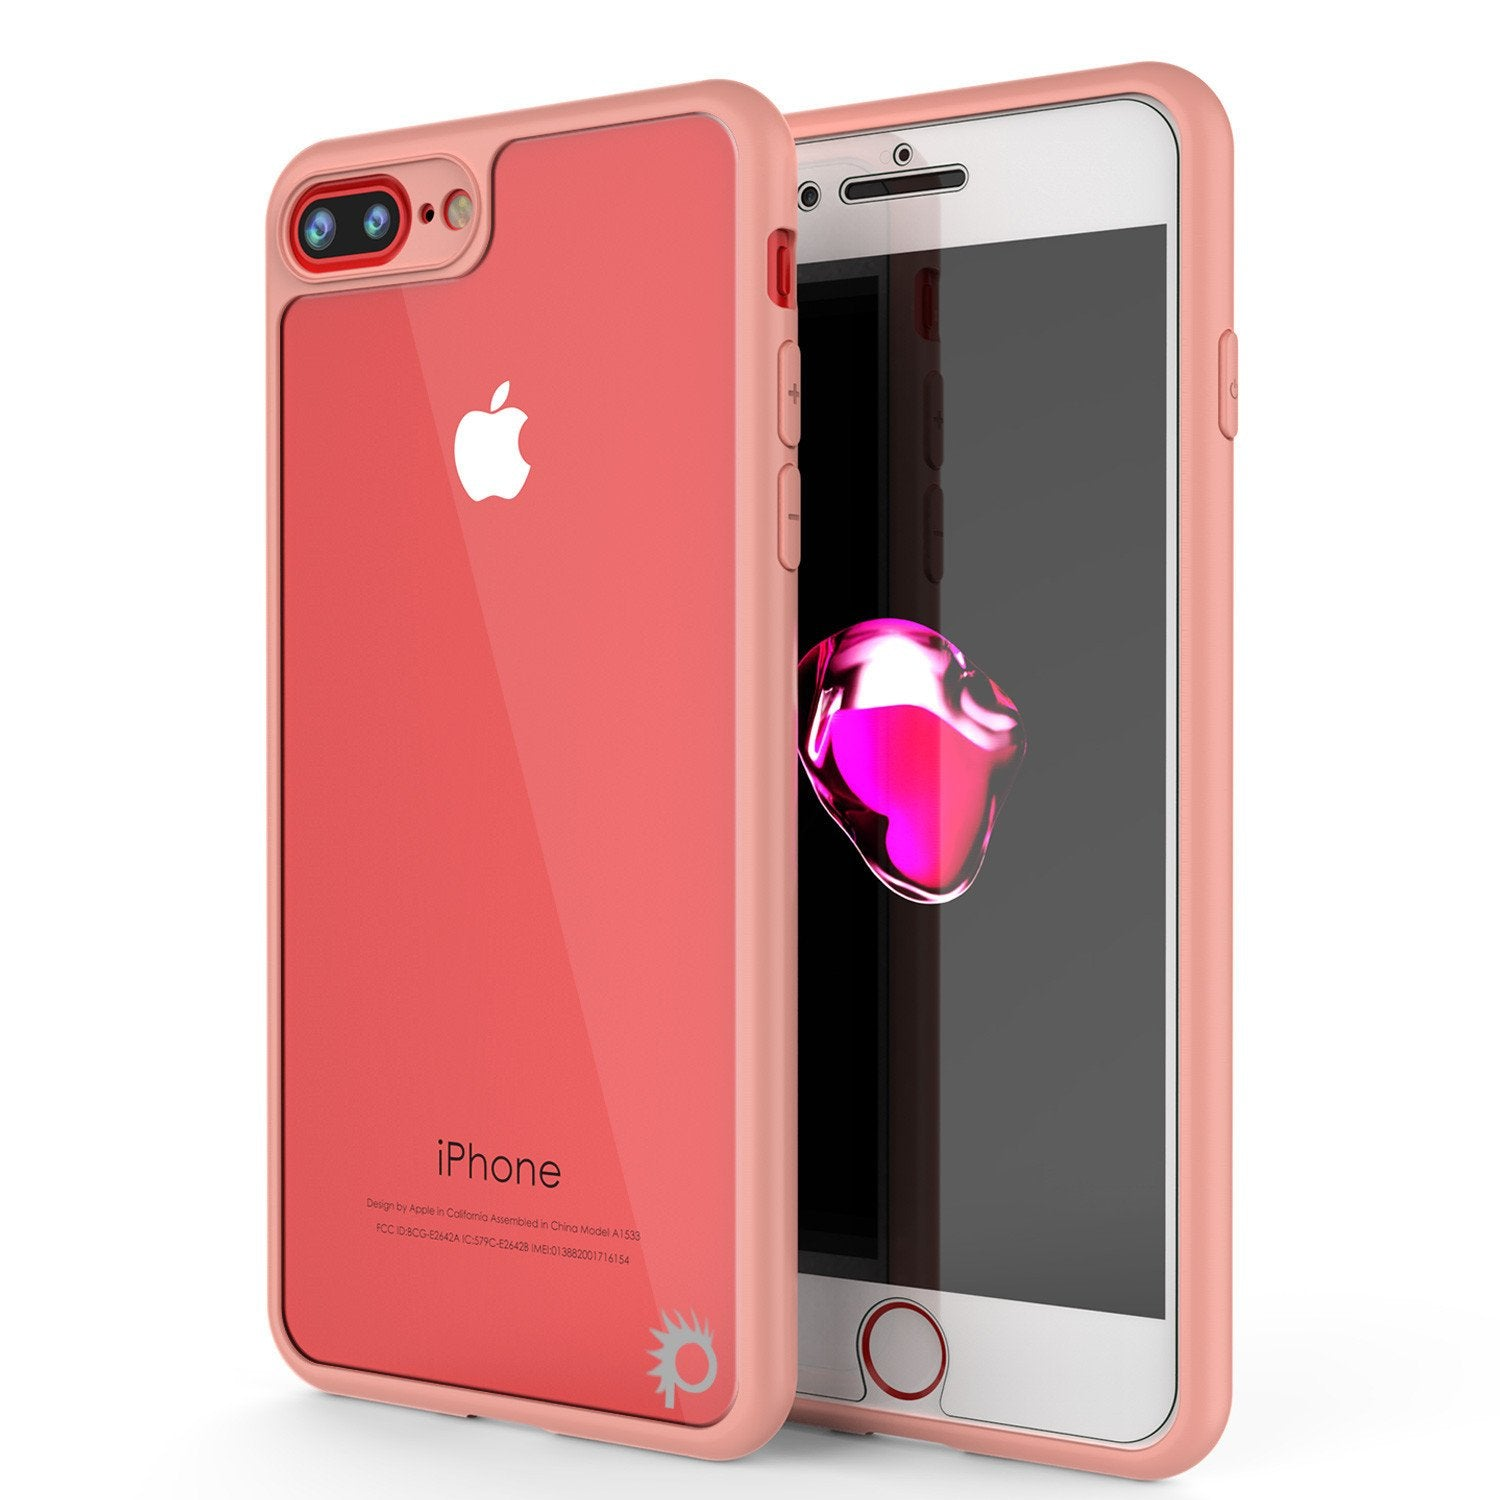 iPhone 7 PLUS Case, Punkcase [MASK Series] [PINK] Full Body Hybrid Dual Layer TPU Cover [Clear Back] [Non Slip] [Ultra Thin Fit] W/ protective Tempered Glass Screen Protector for Apple iPhone 7s PLUS